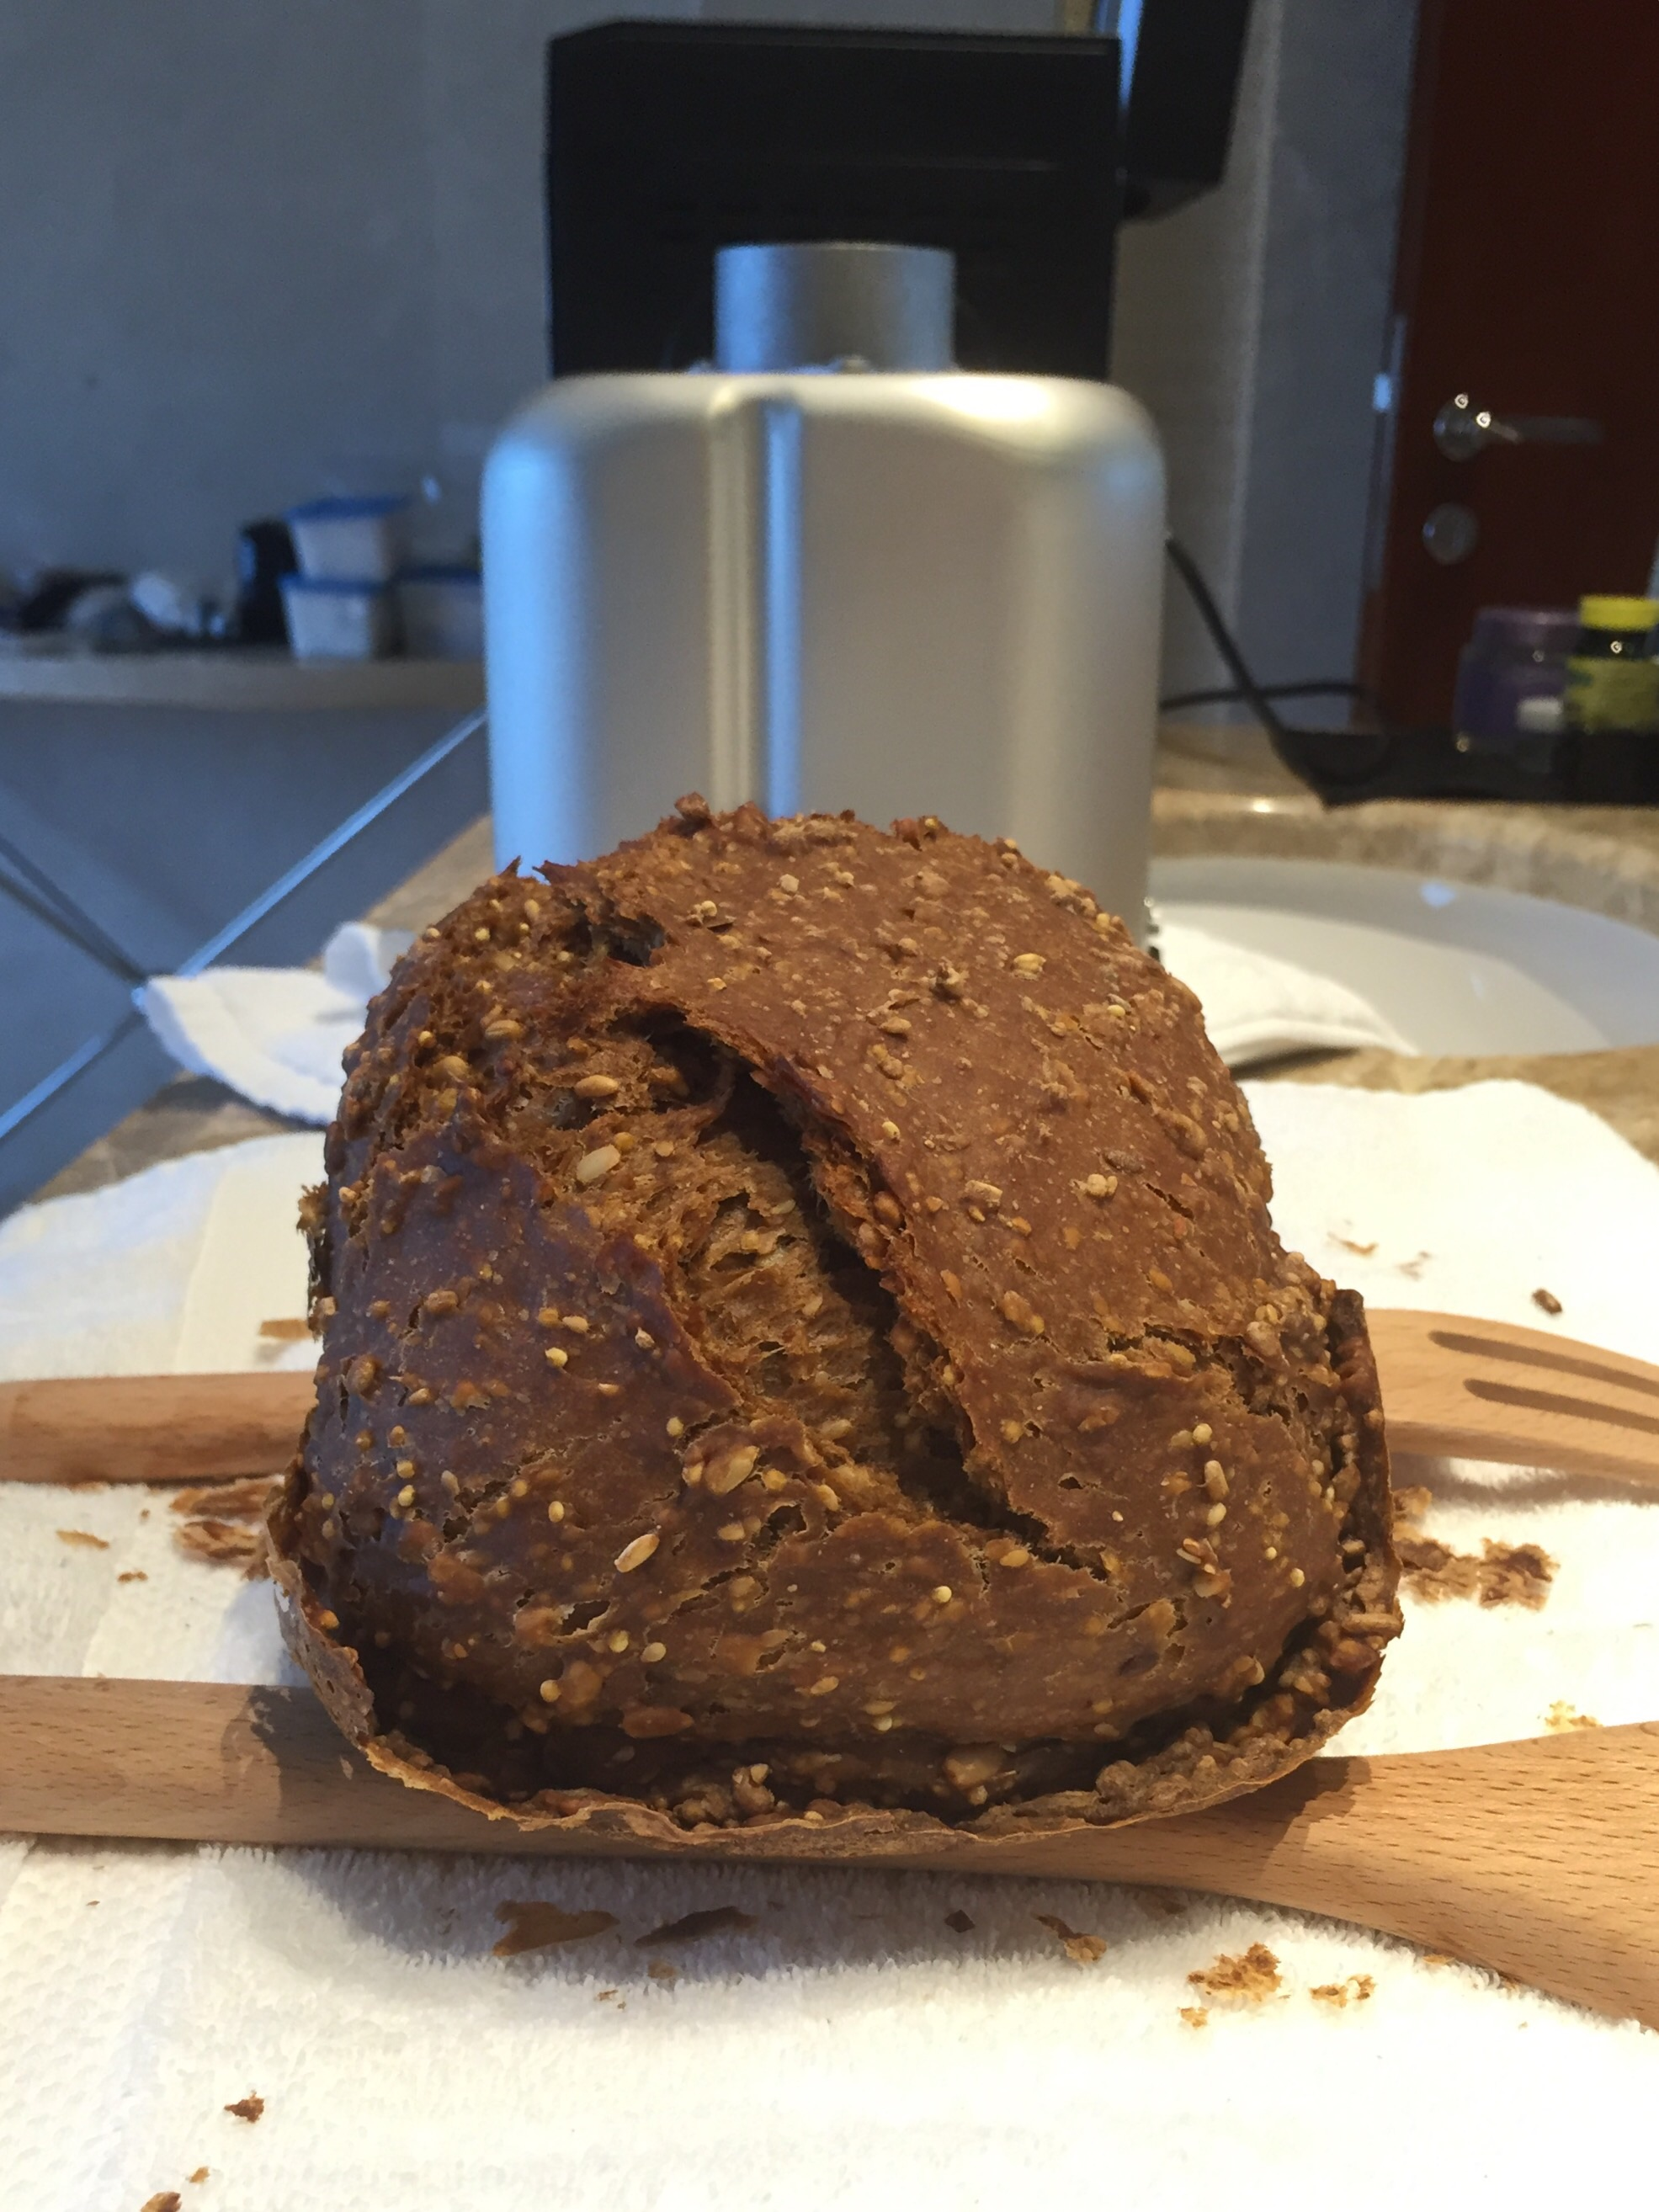 Unglamorous bread-baking but with excellent culinary results nonetheless!